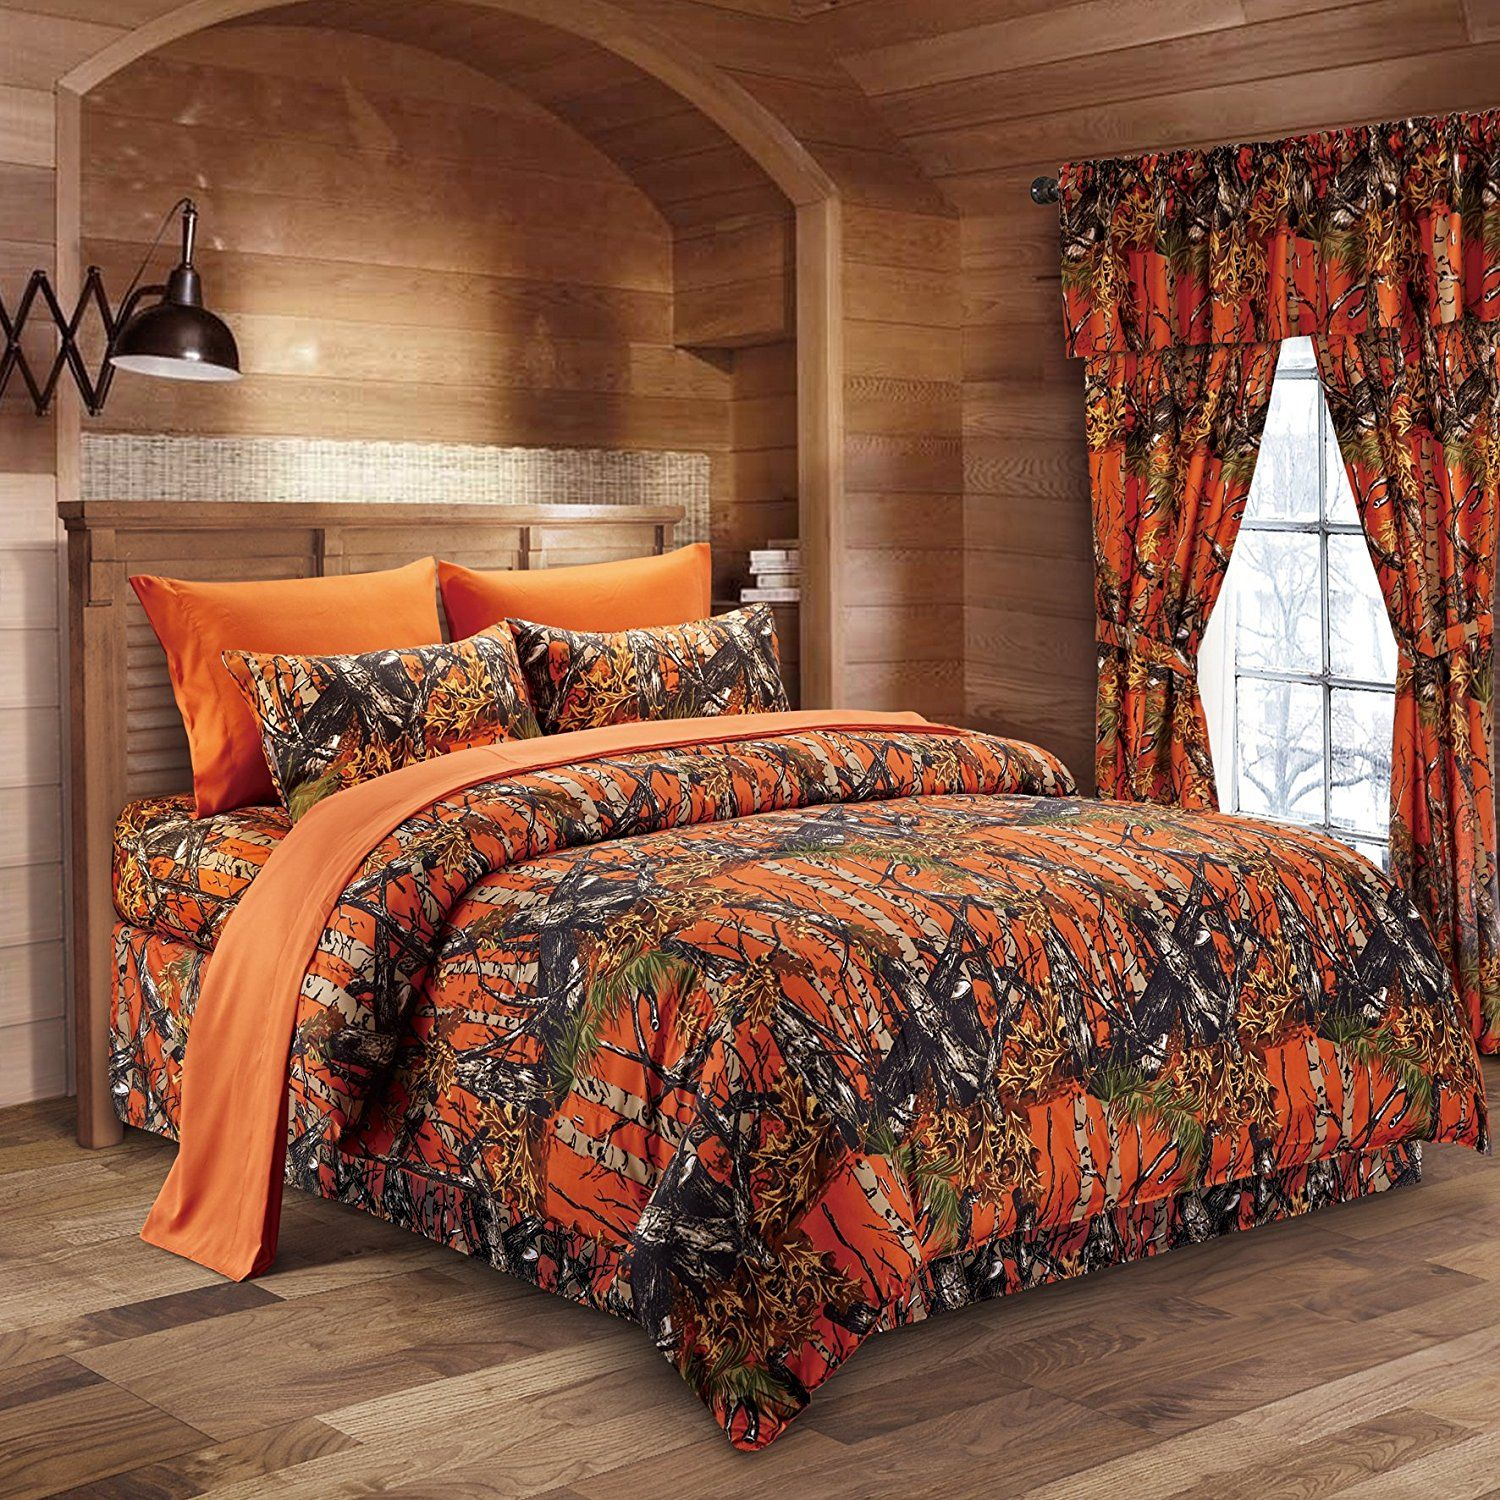 Boxing Day Bedding Sets Sale Camo Bedding Sets Unique Bedding Sets Camouflage Bedding